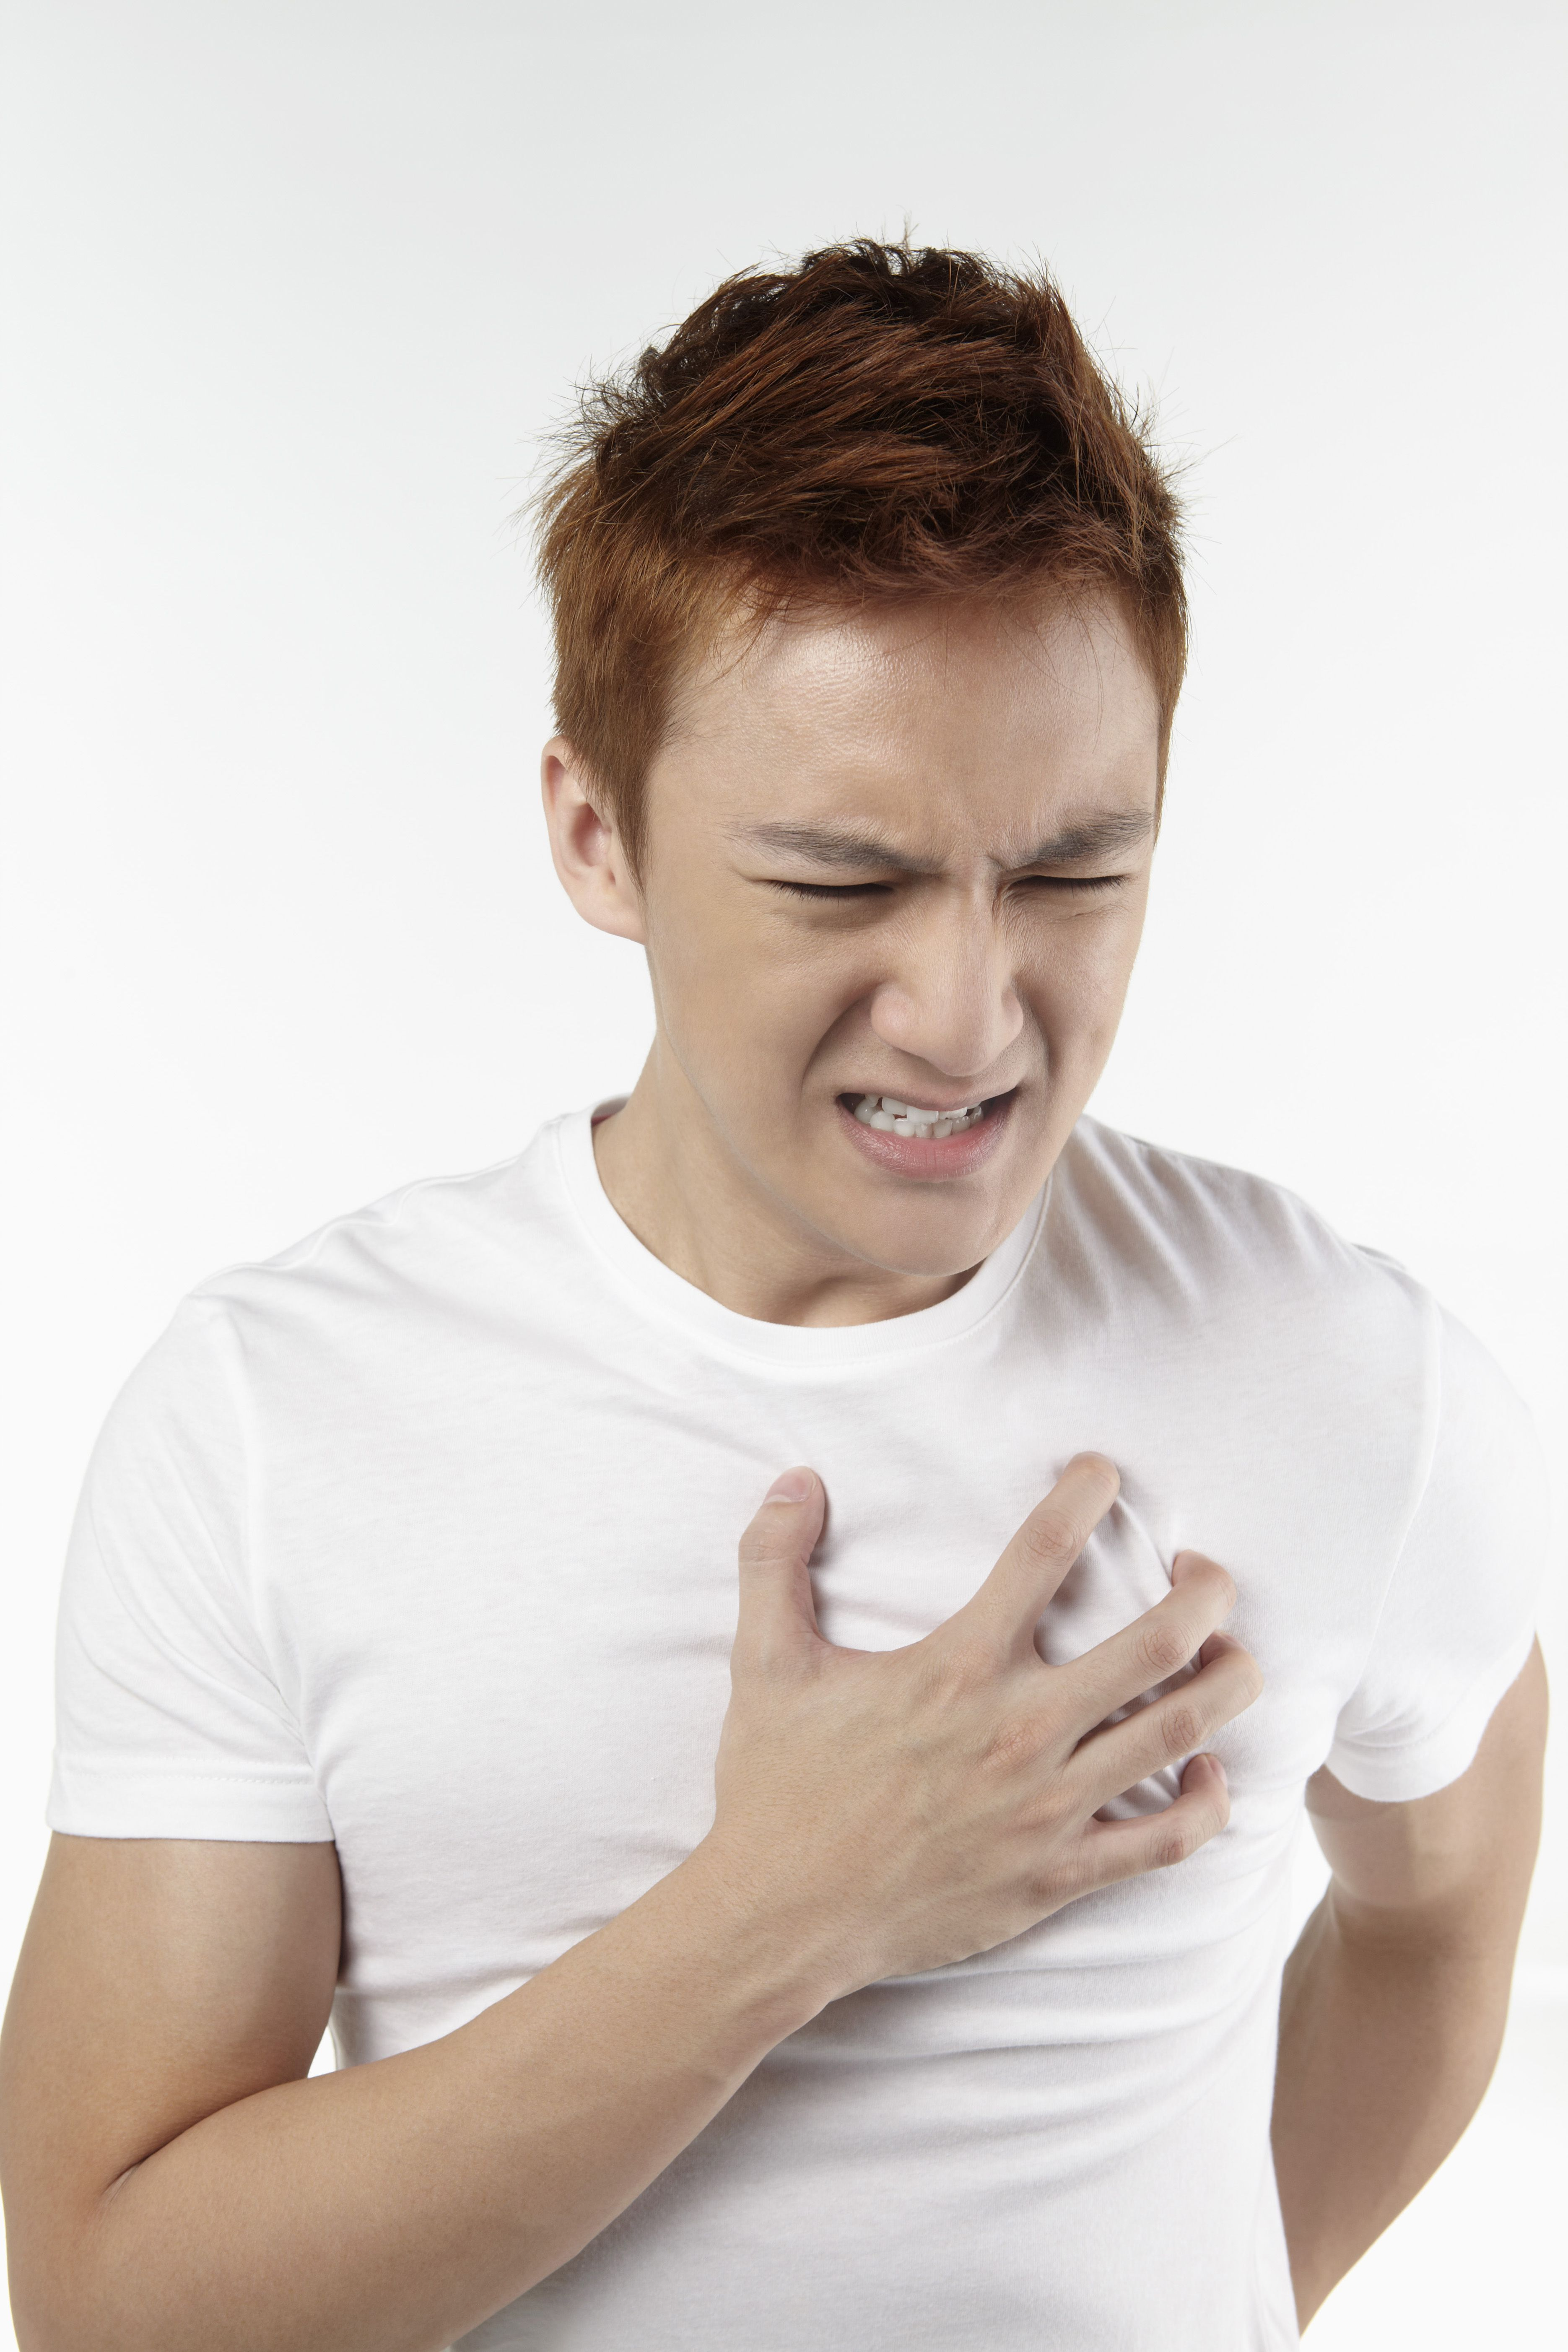 Is Chest Tightness Linked to Asthma?